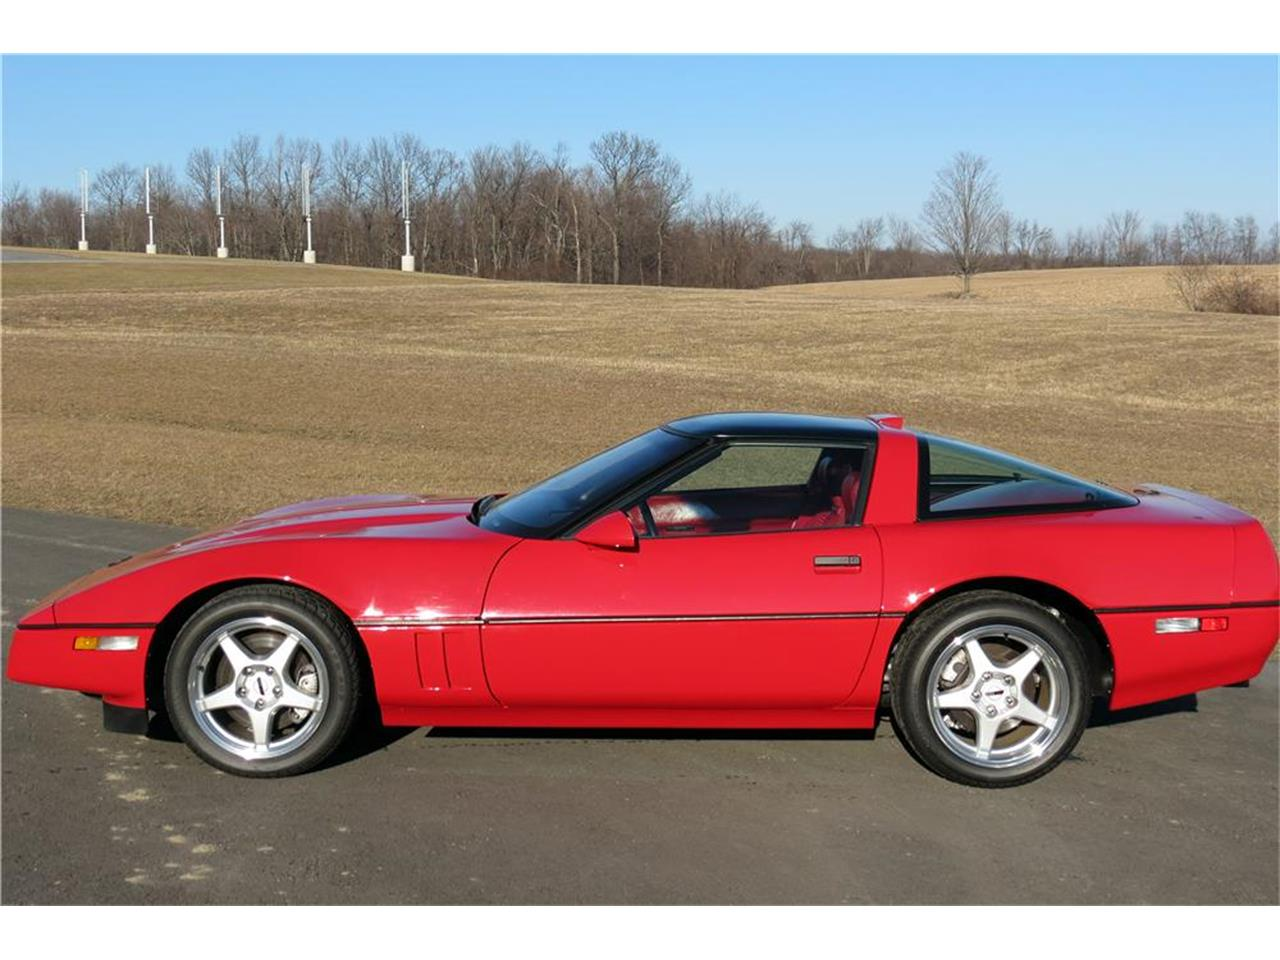 1990 Chevrolet Corvette Zr1 For Sale 1990 Chevrolet Corvette Zr1 In Minot North Dakota